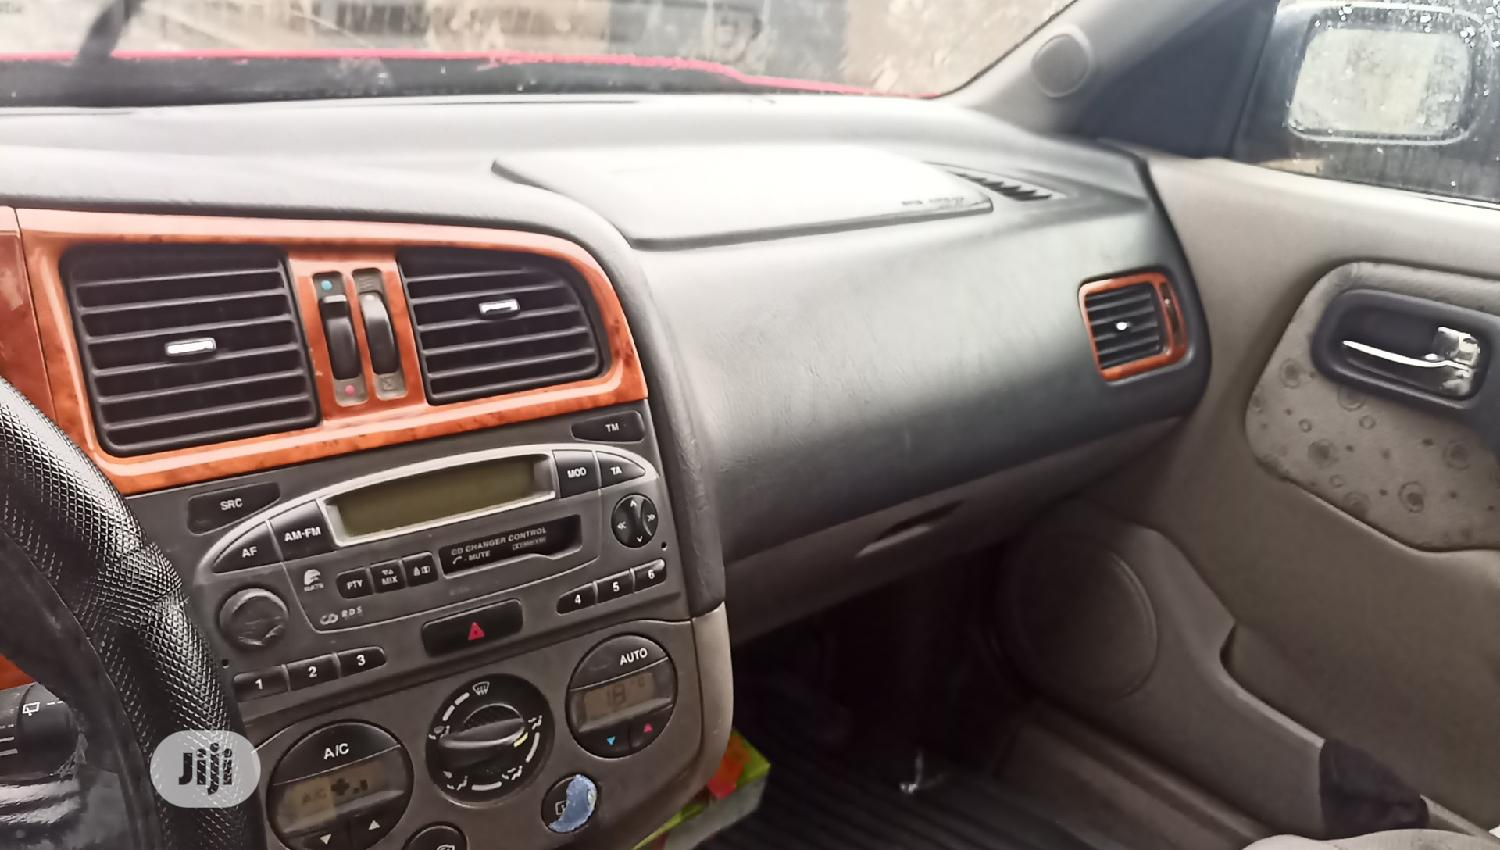 Nissan Primera 2000 2.0 D Wagon Red   Cars for sale in Port-Harcourt, Rivers State, Nigeria